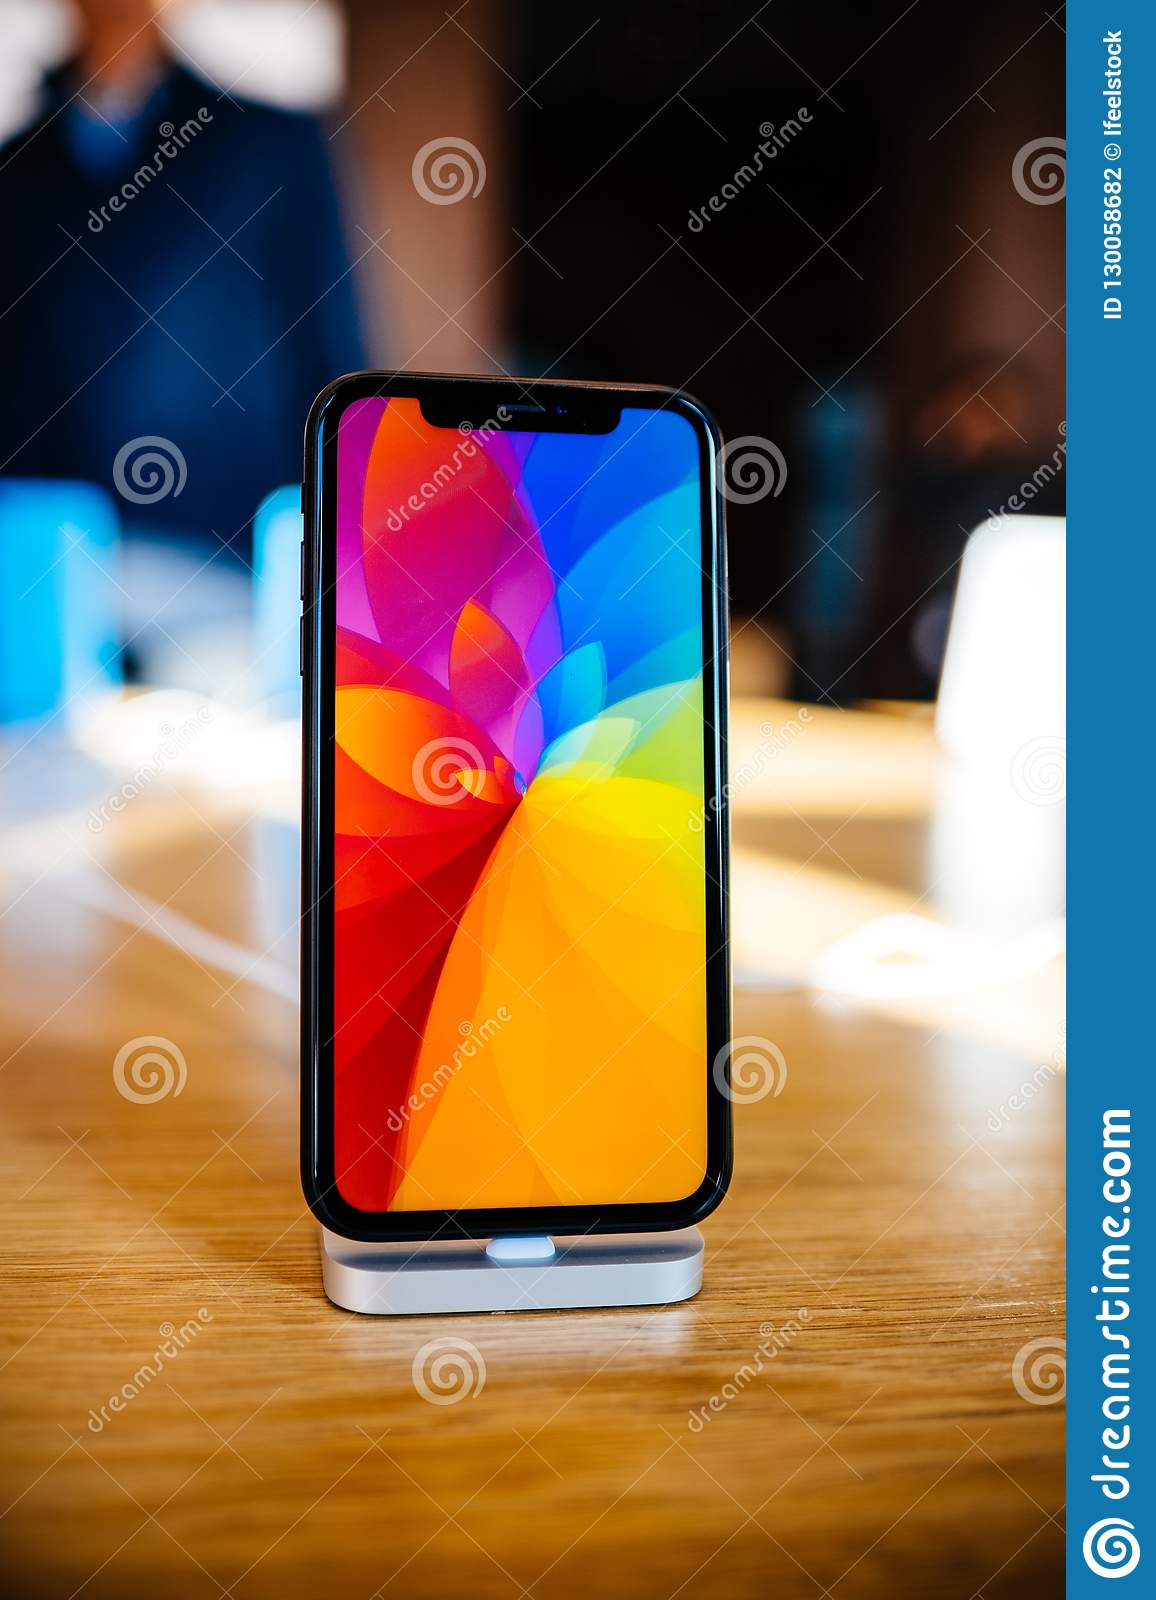 New Iphone Xr Rainbow Screensaver Editorial Photography - Image of